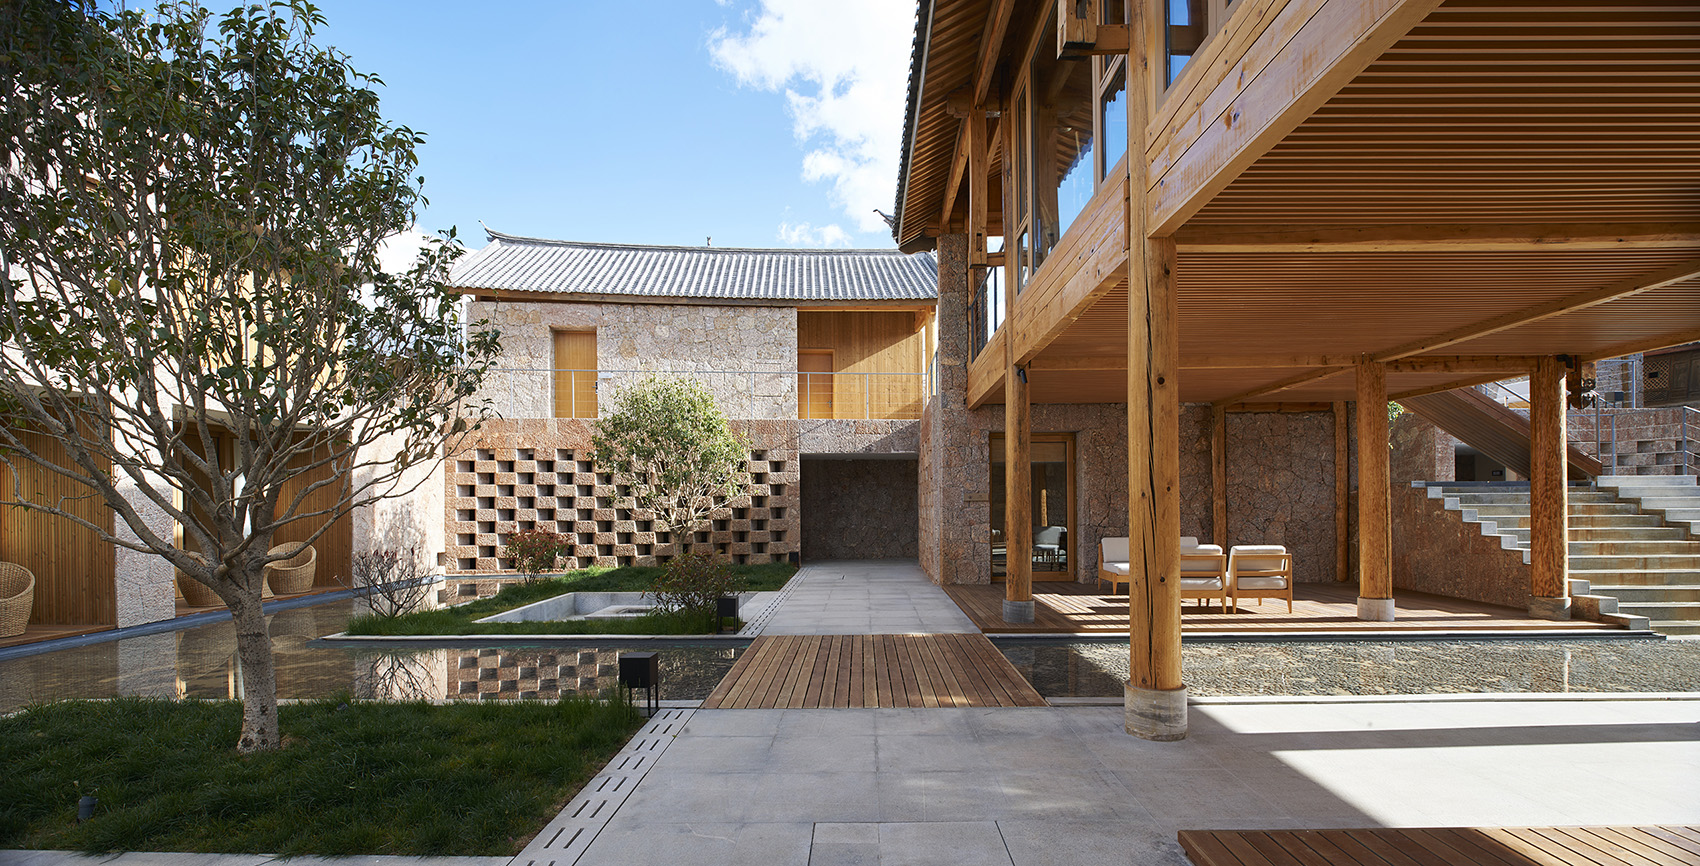 011-tsingpu-baisha-retreat-china-by-tsutsumi-associates